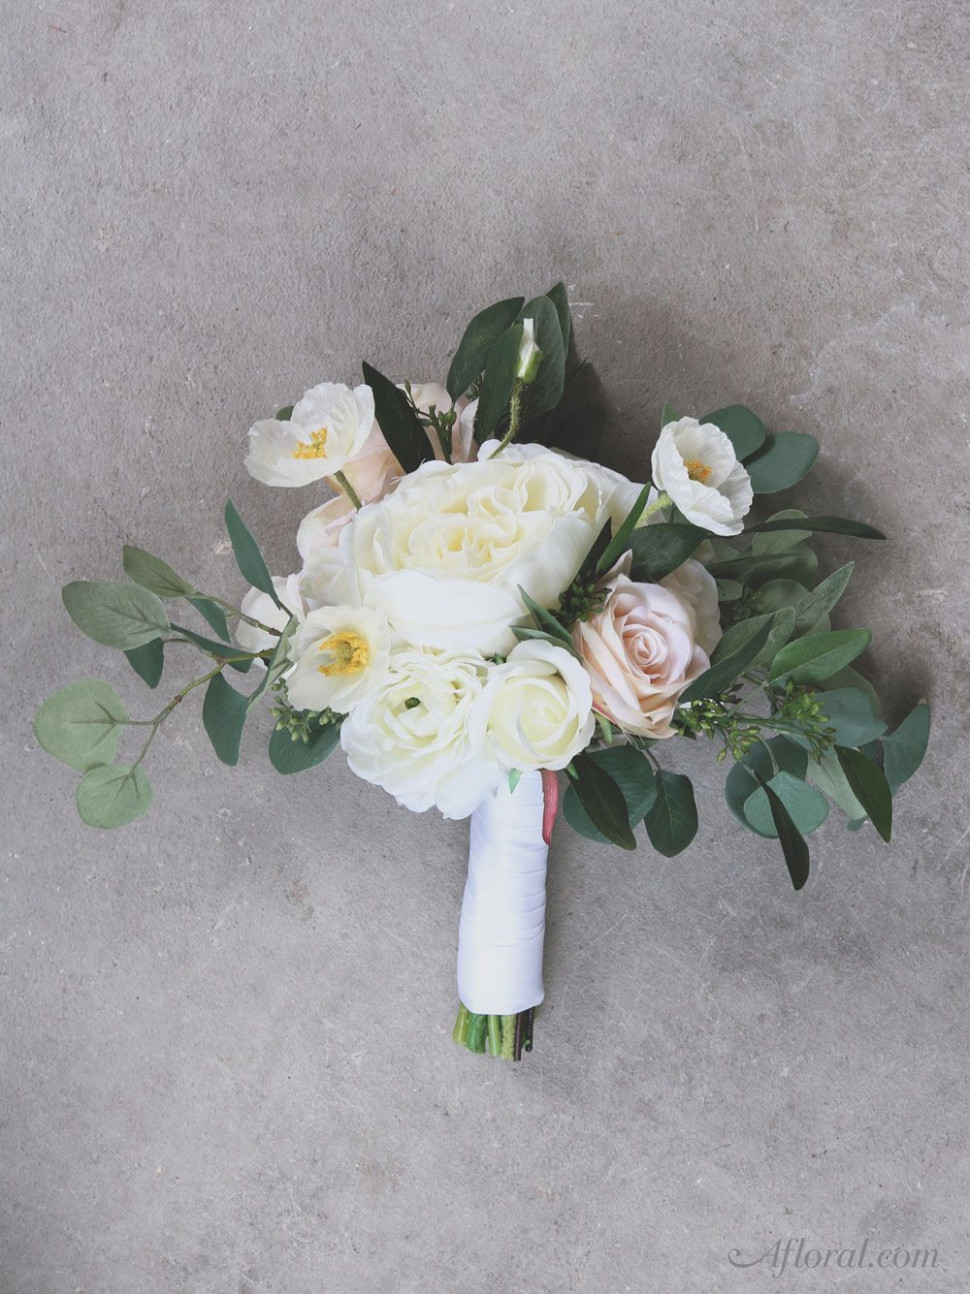 Make Your Own Wedding Flowers: How To Make Your Own Wedding Bouquets With Silk Flowers